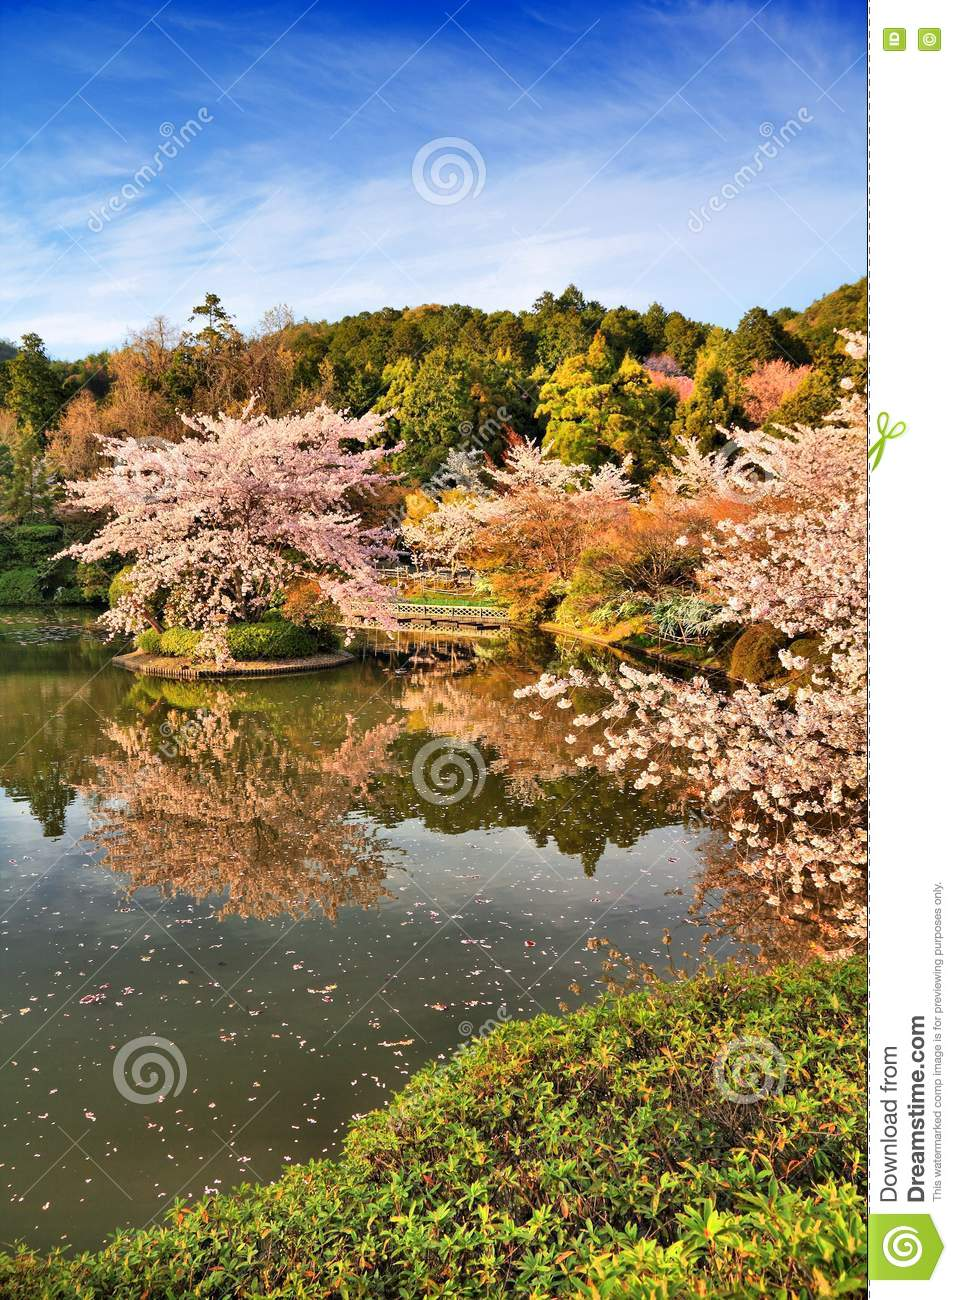 Kyoto cherry blossom stock image. Image of sightseeing - 78072761